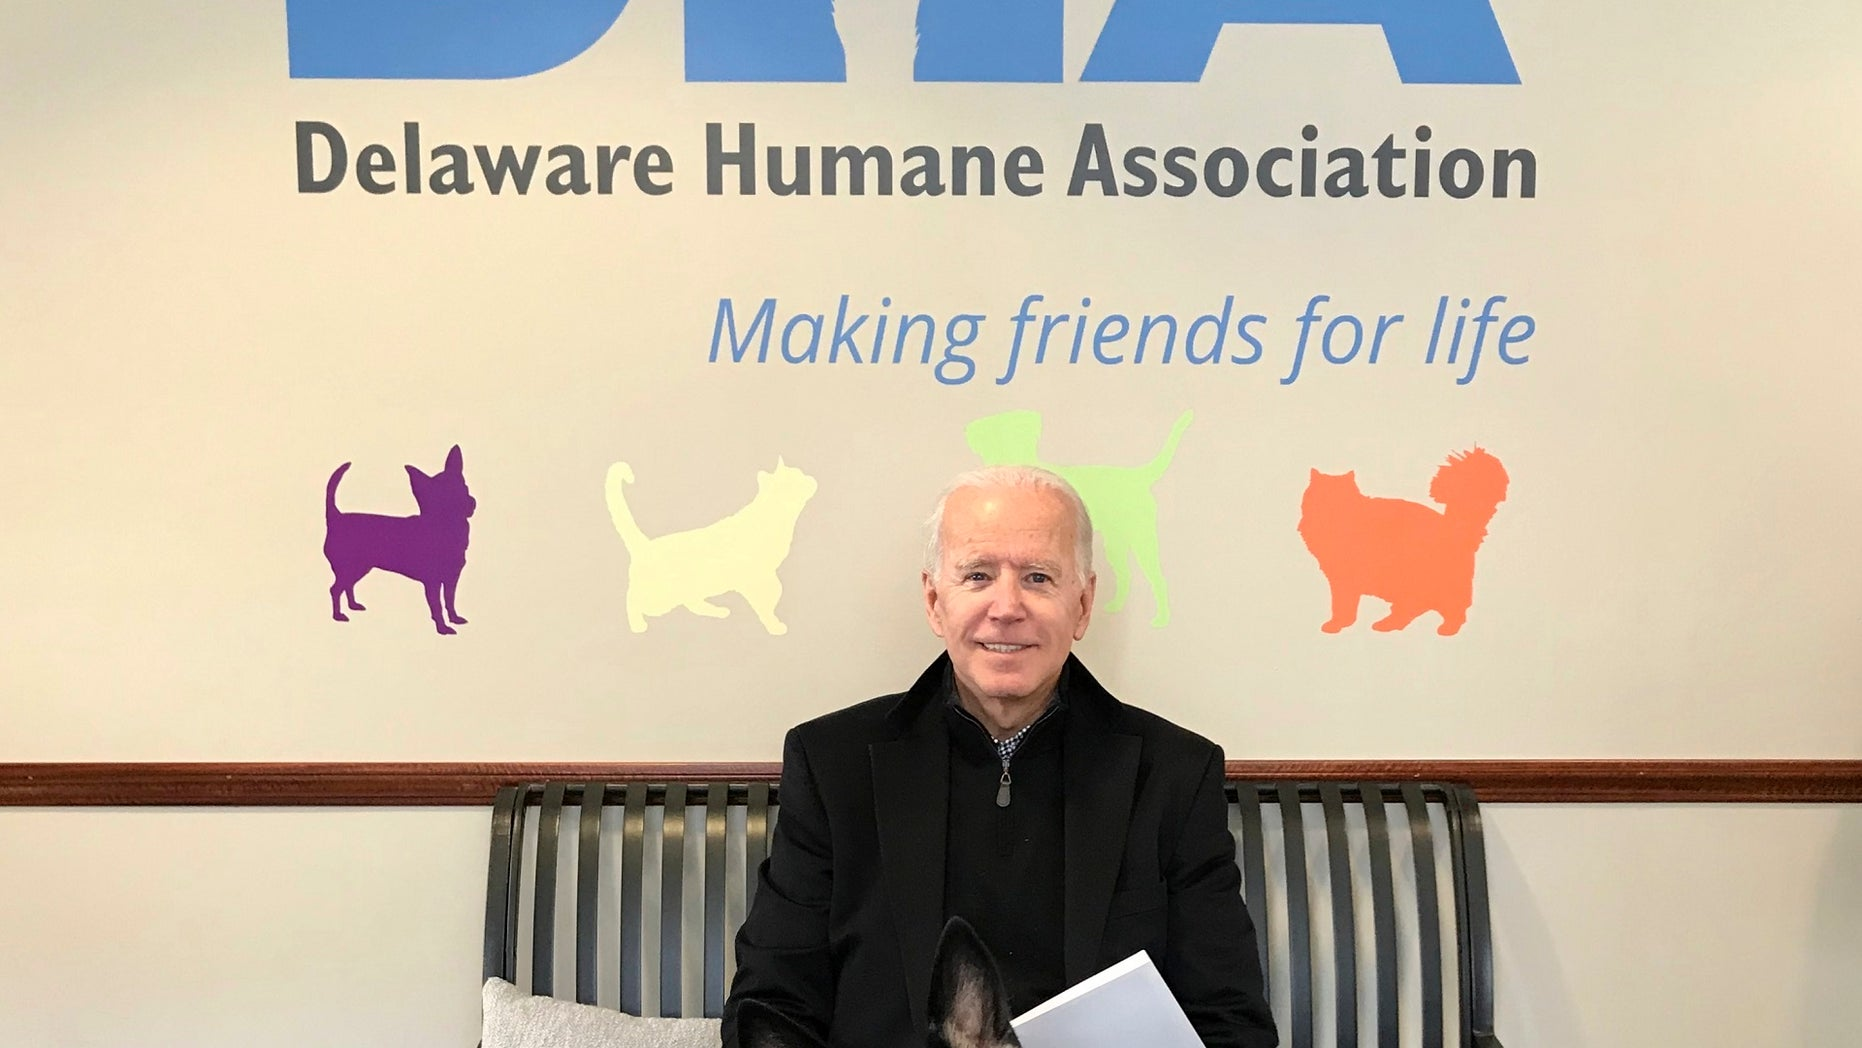 This photo provided by Delaware Humane Association shows former Vice President Joe Biden with his new dog at the Delaware Humane Association in Wilmington. The association said Saturday that Biden and his wife, Jill, have adopted a 10-month-old German shepherd named Major. Director of Animal Care Kerry Bruni said the Bidens had been providing foster care for the dog in their home for several months and were ready to make the adoption official.